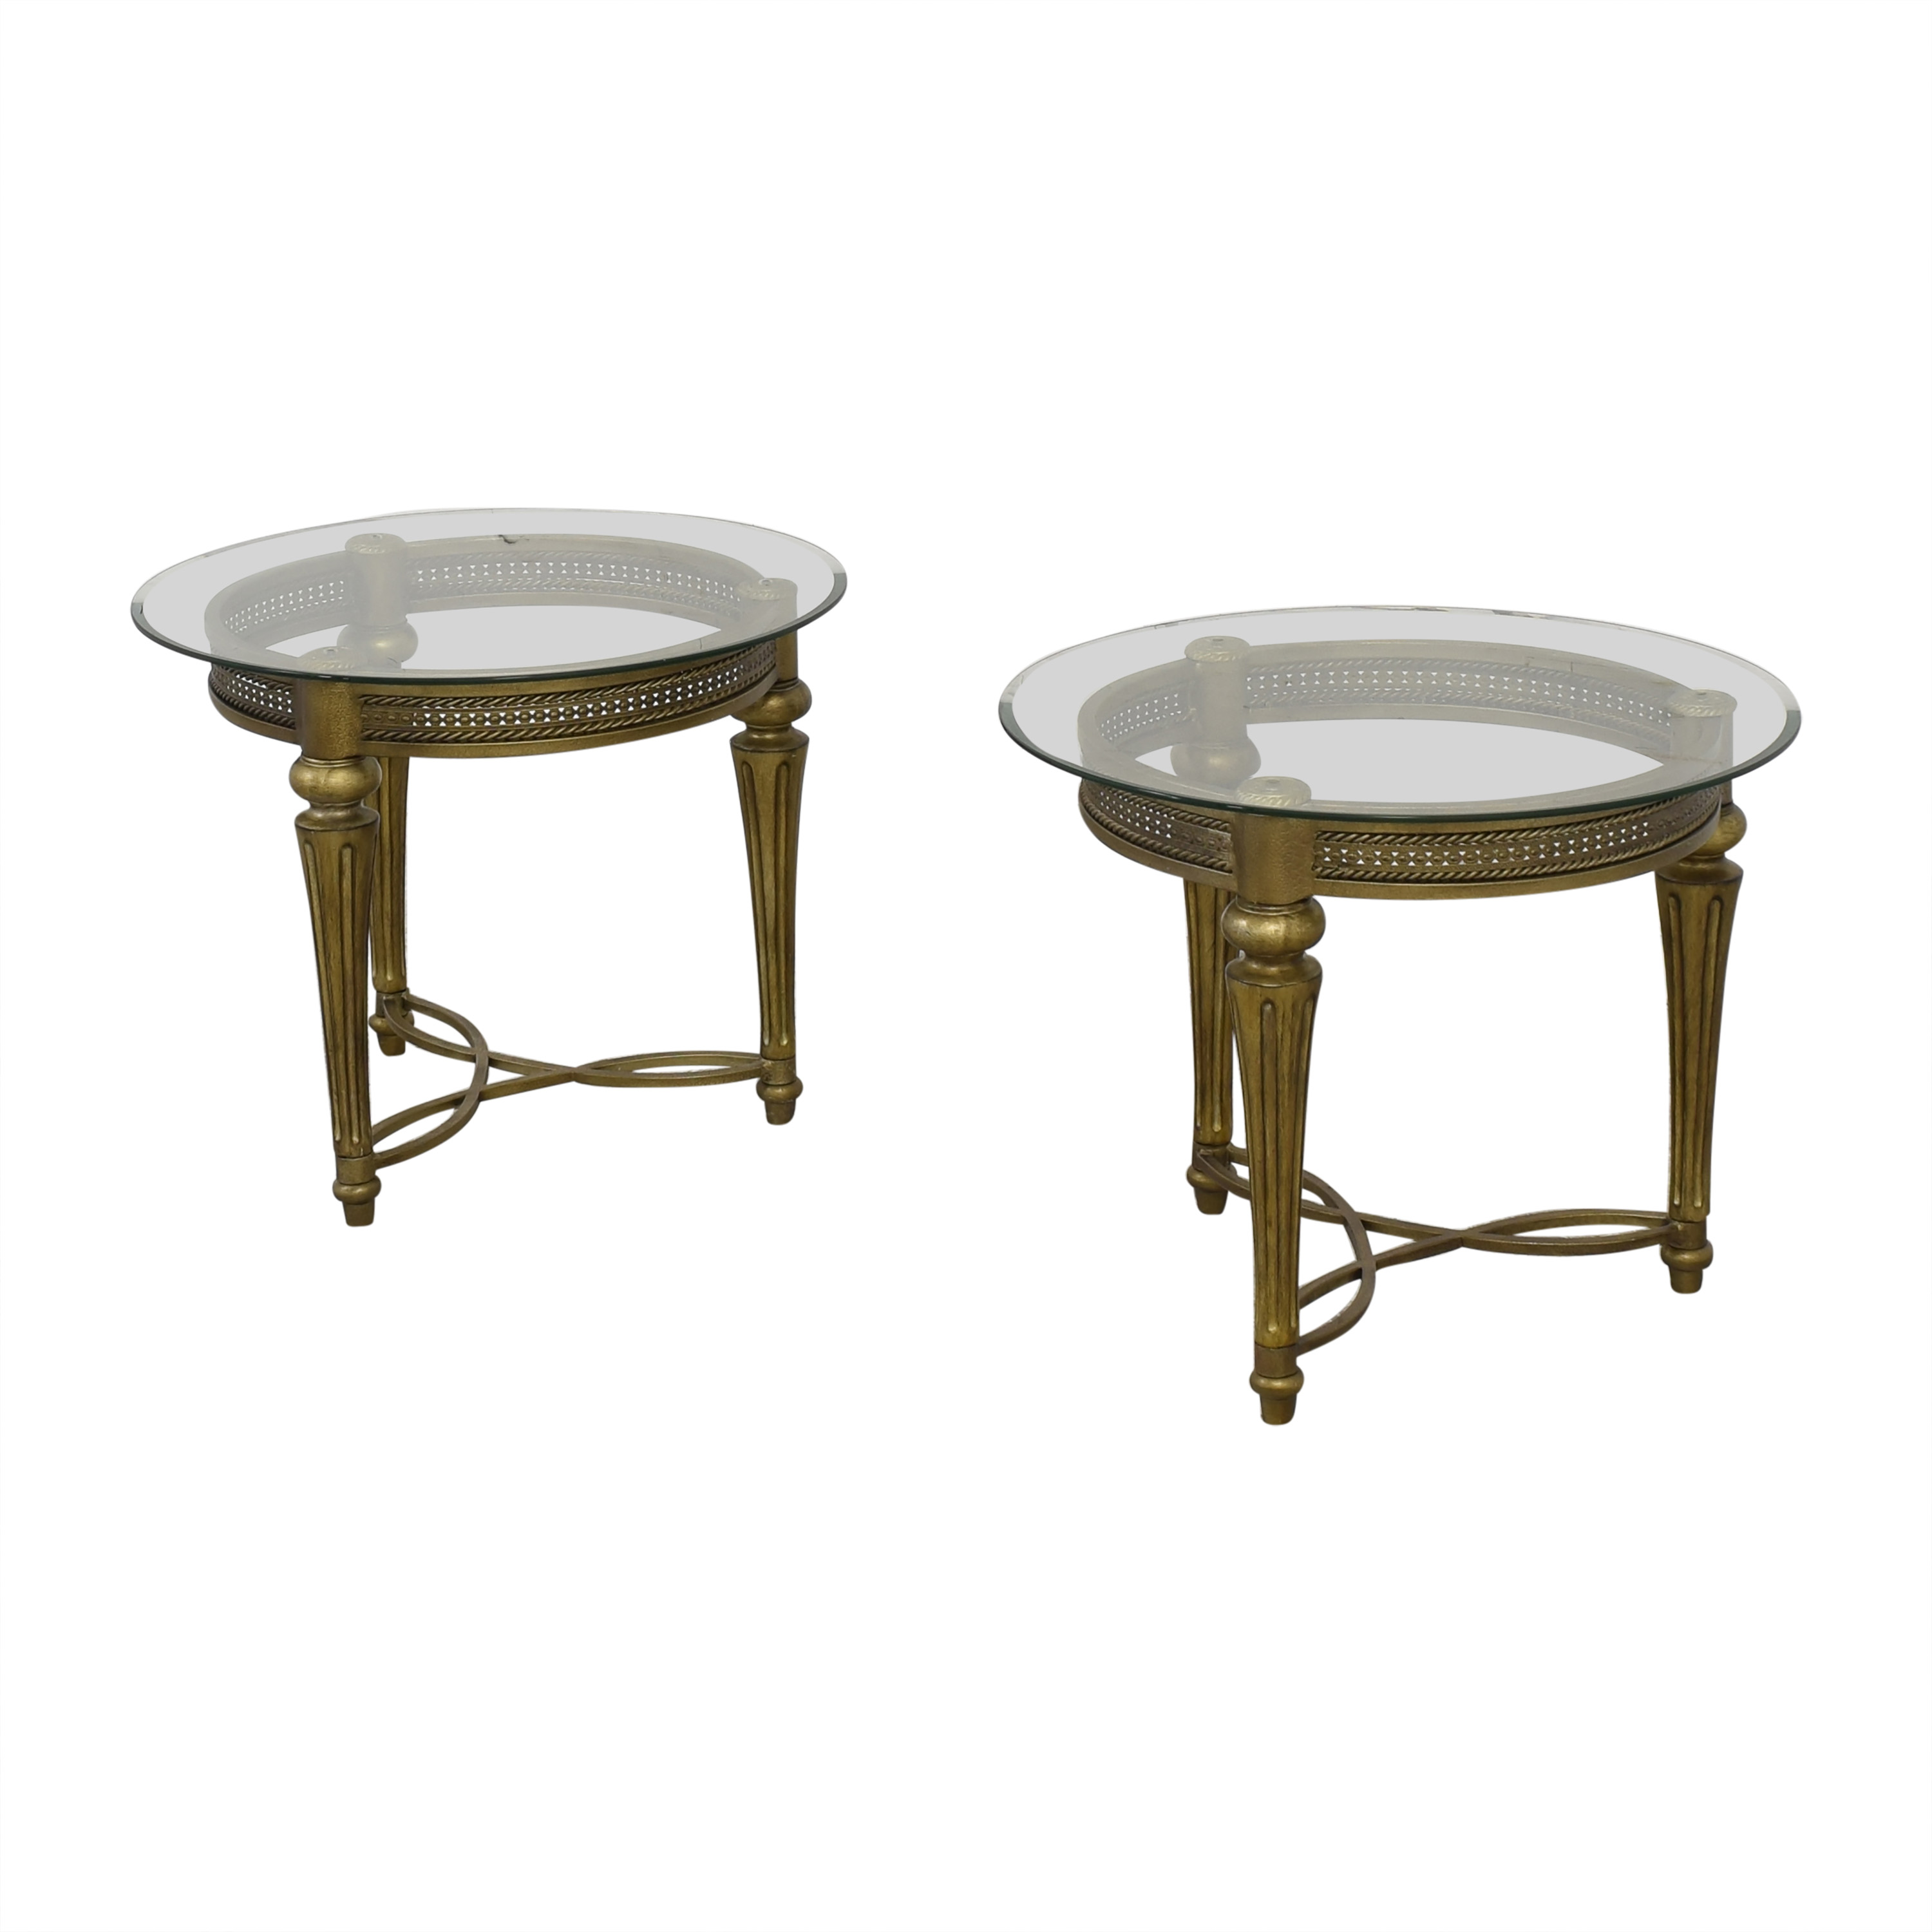 Magnussen Home Magnussen Home Furniture Galloway Round End Tables ma